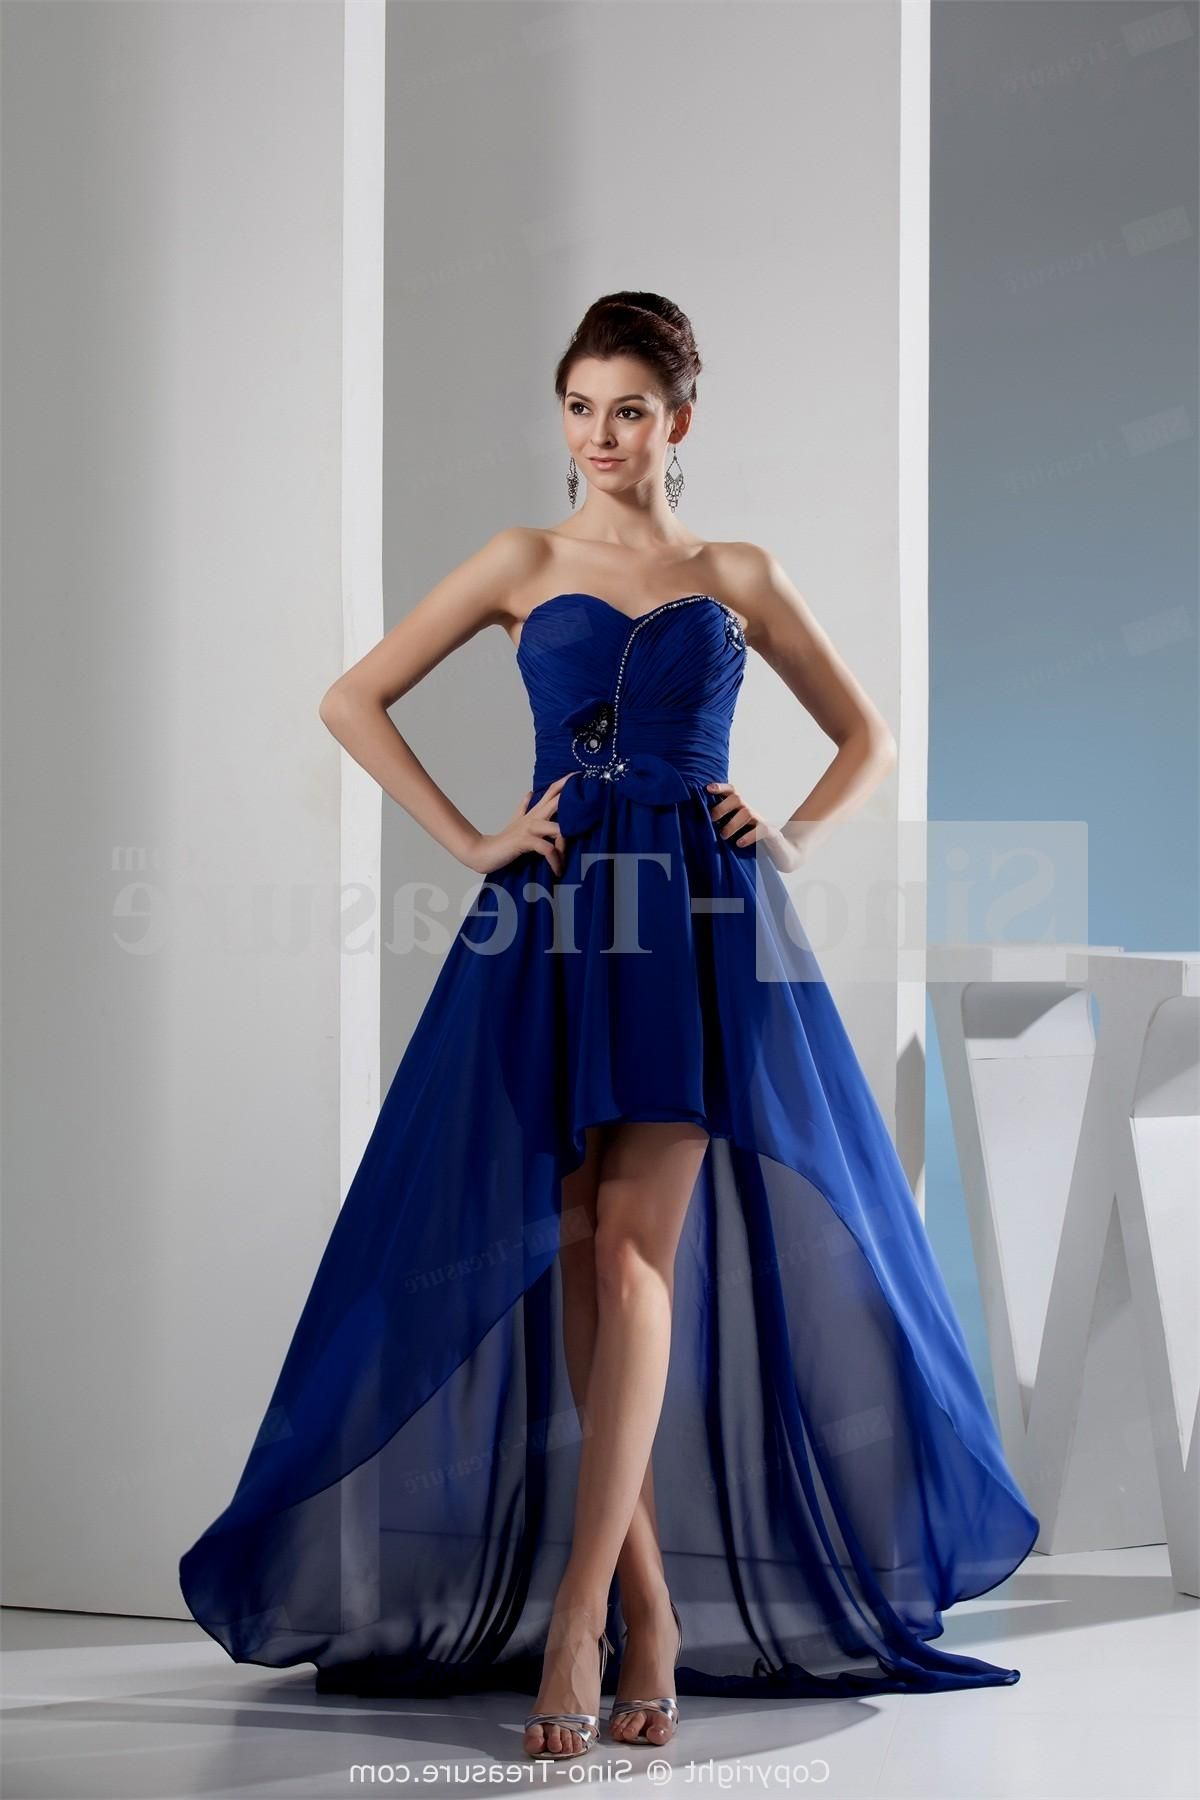 Glamour Royal Blue Short A-line Cocktail Dress with Strapless Neck ...